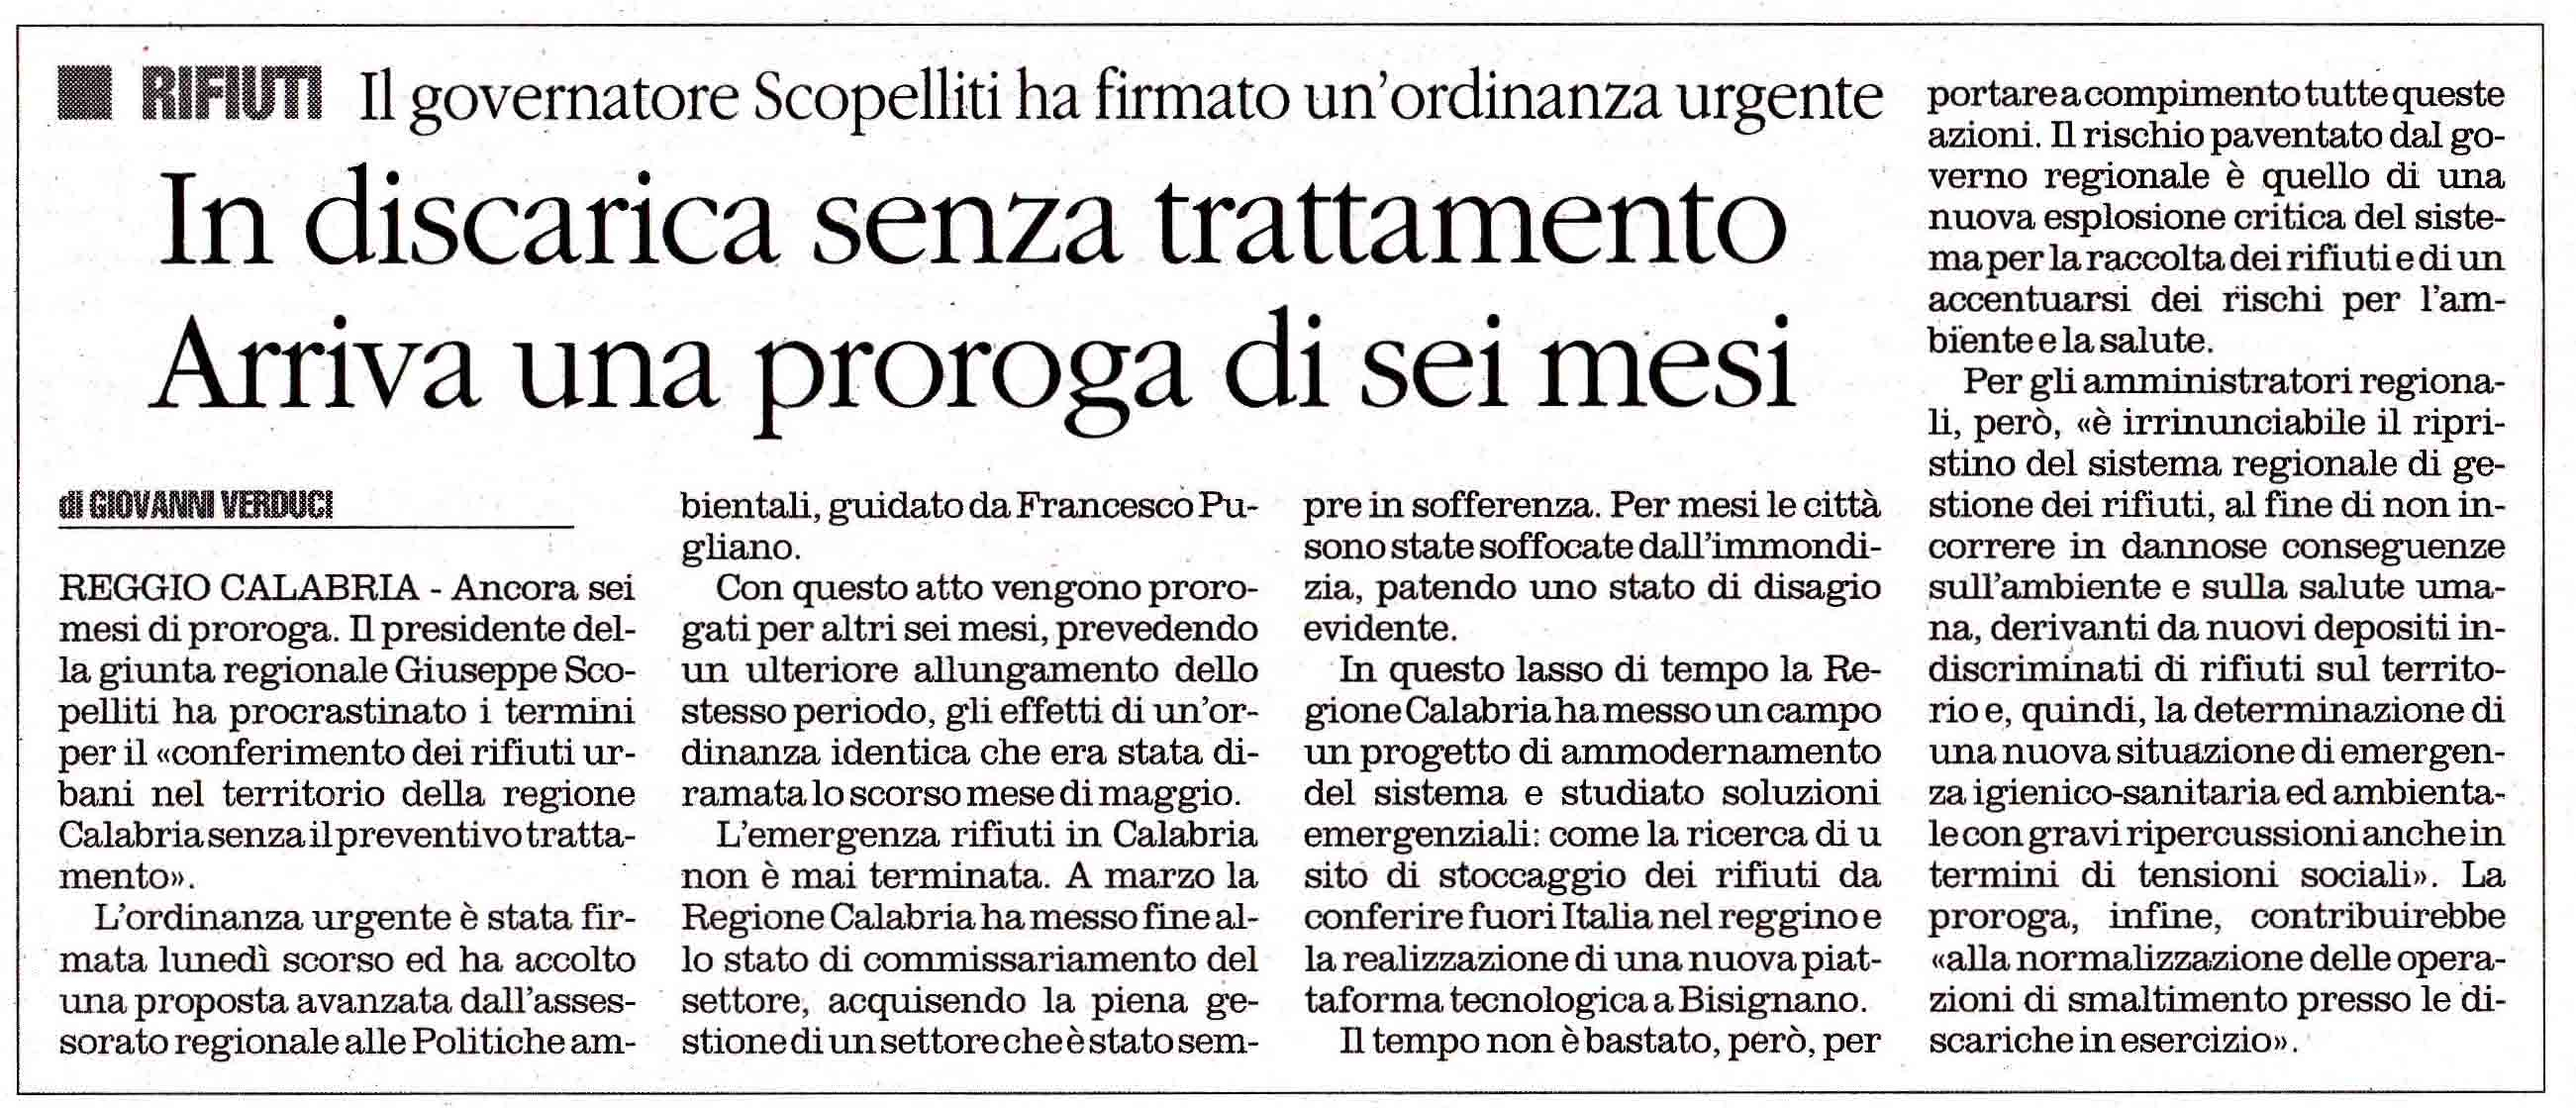 il Quoiidiano 14.11.2013